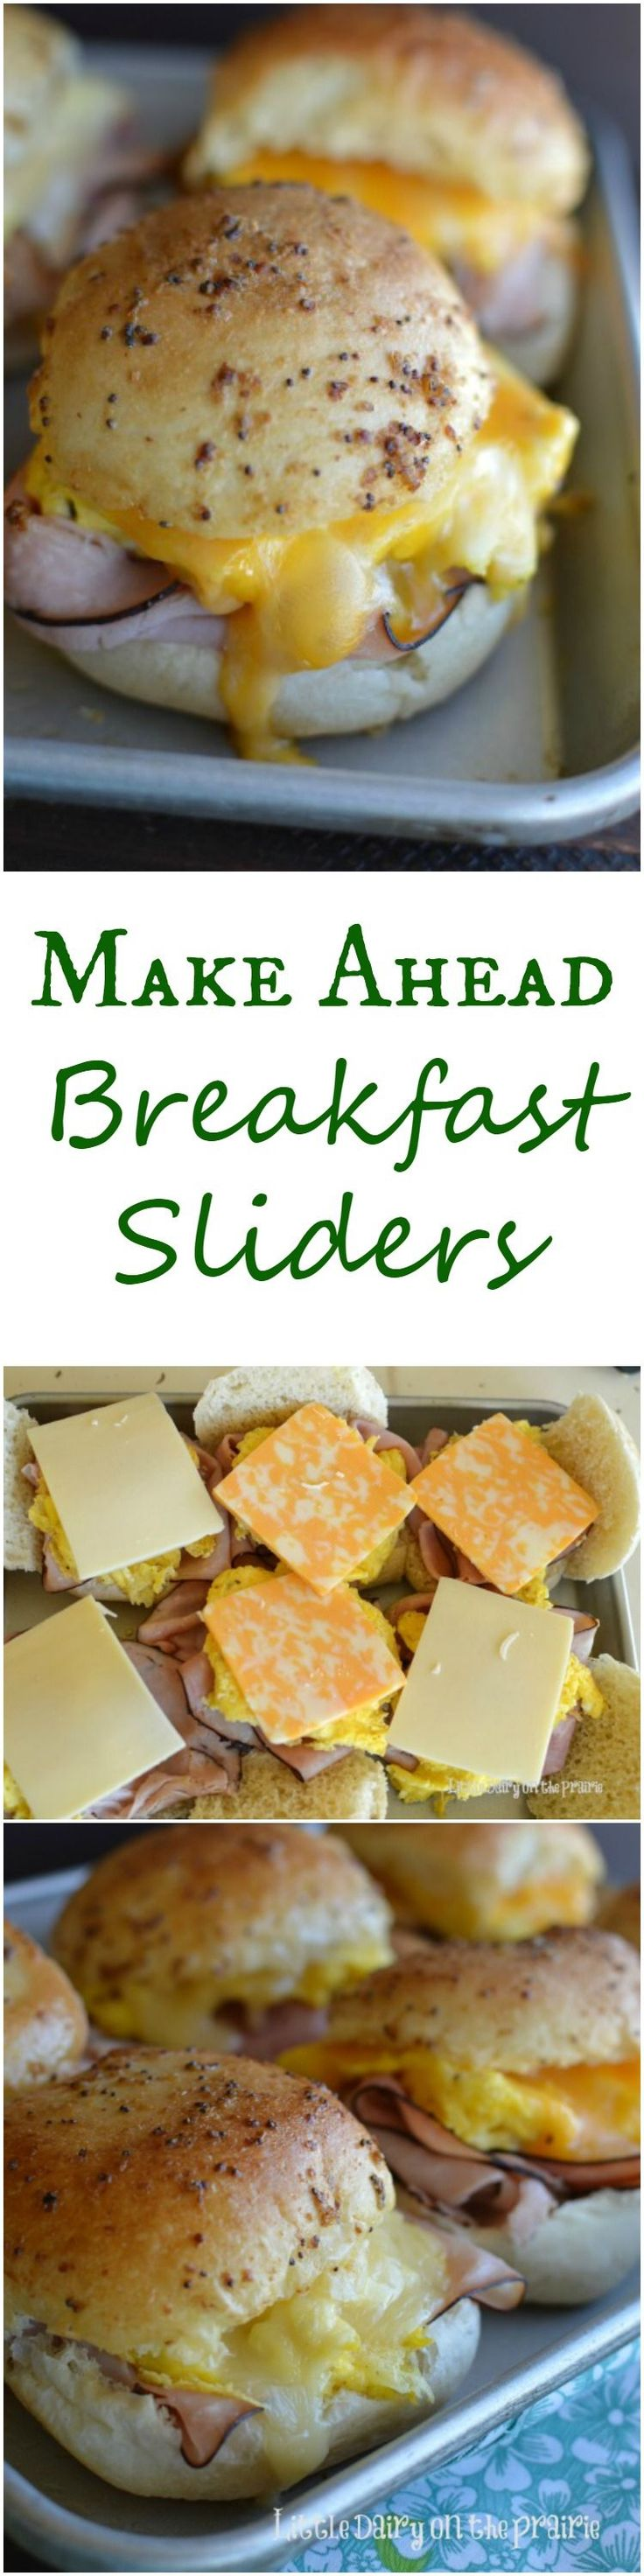 Hot Breakfast Egg and Cheese Sliders! My very favorite make ahead breakfast! Kids and hubby like them too!